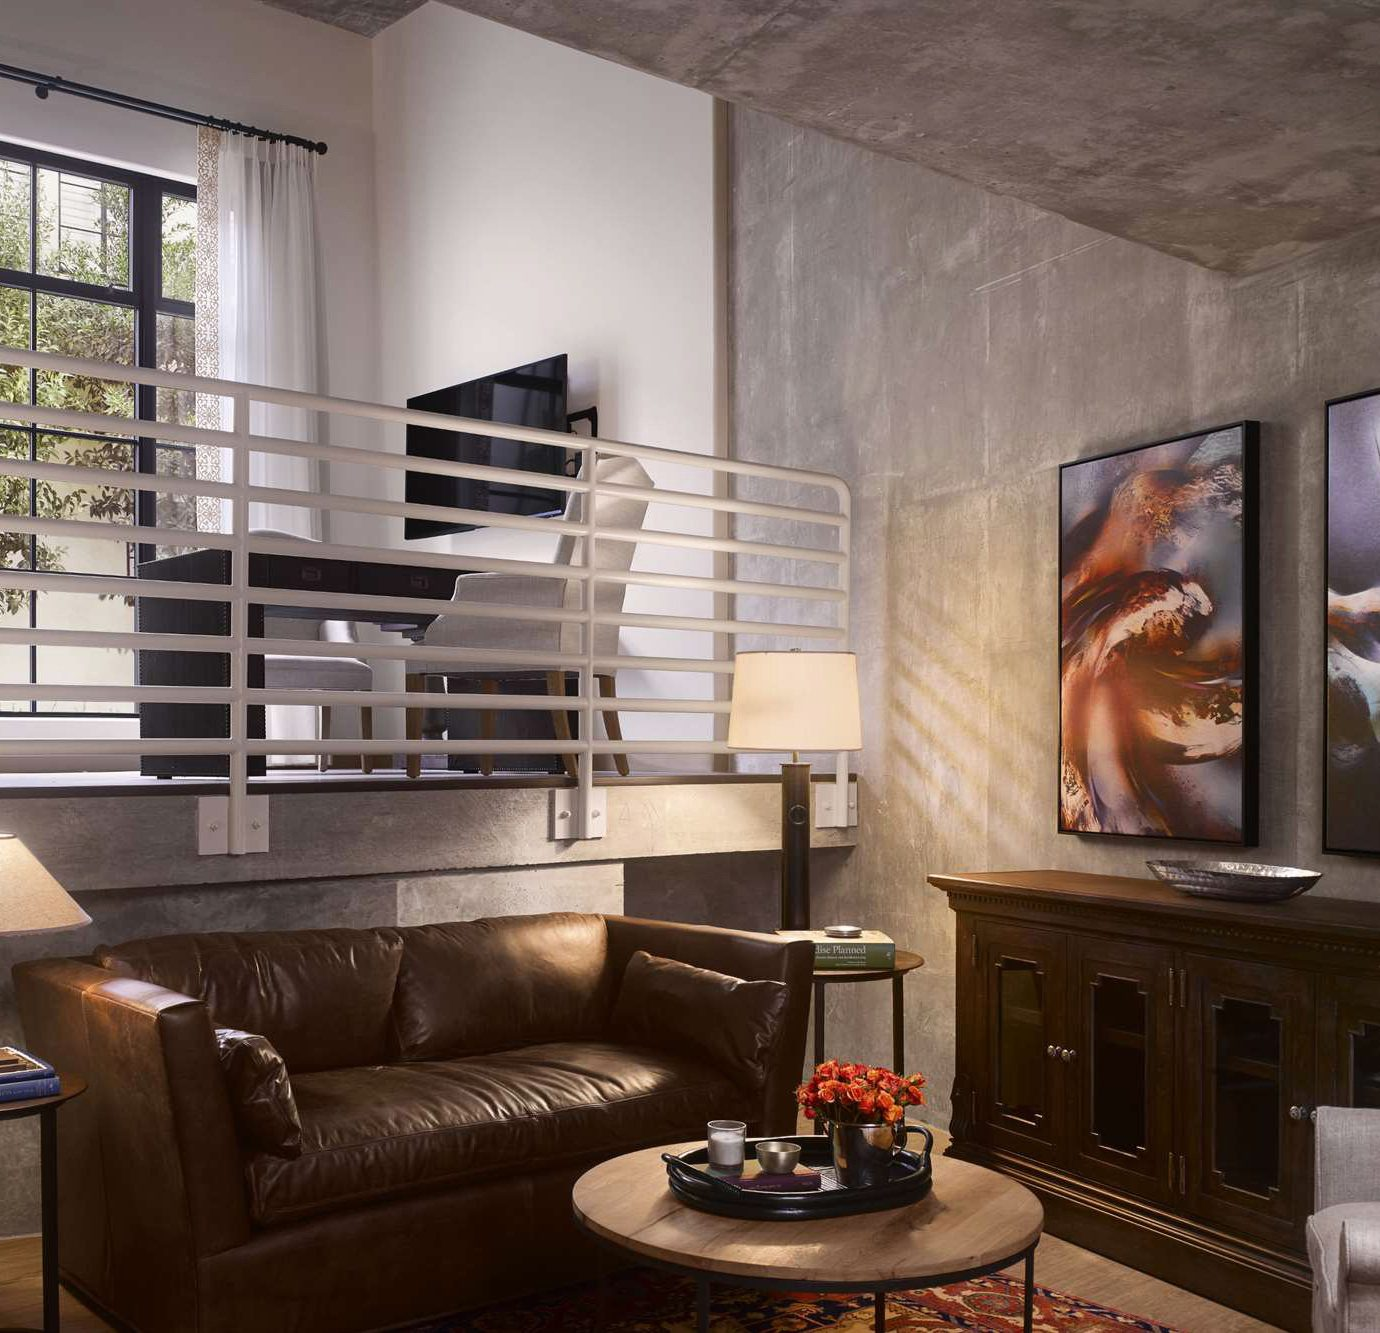 living room property home Fireplace house condominium loft Lobby mansion leather set